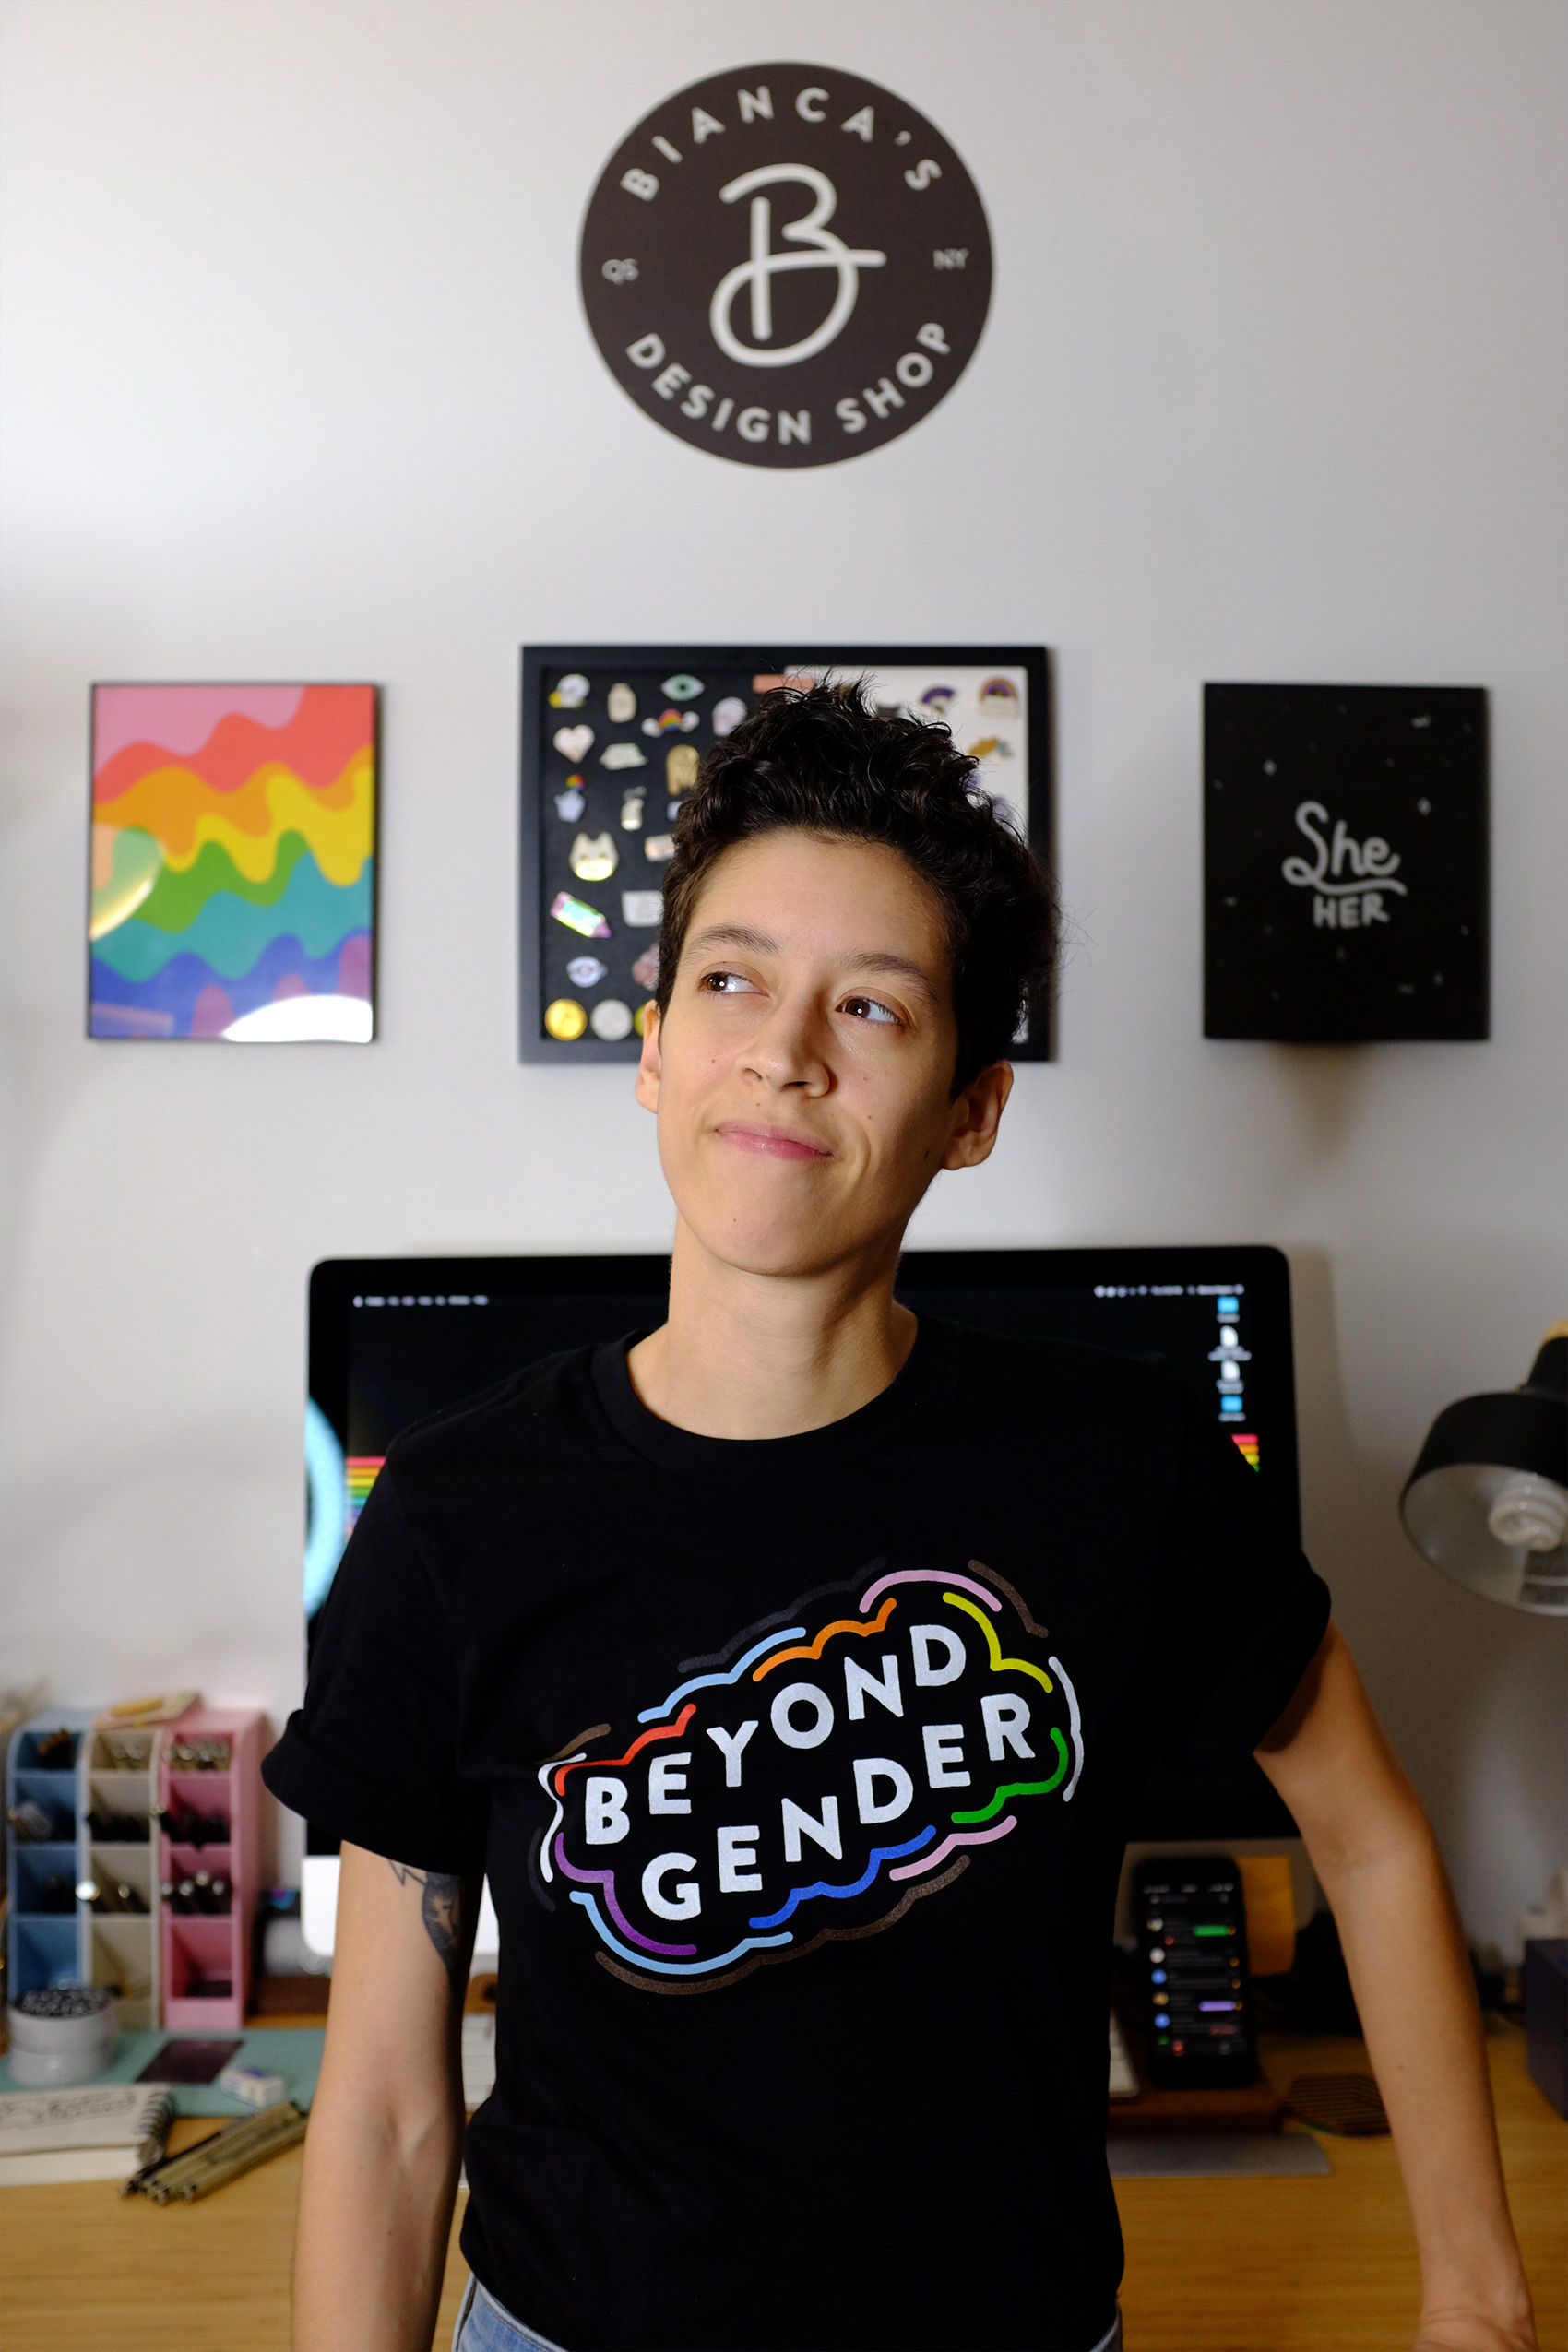 """A medium-skinned woman with her short, black hair worn in a pixie cut wears a black shirt with the phrase """"Beyond Gender"""" written on the front surrounded by colorful squiggles. Behind her is a large Mac computer and a few graphic prints hung on the wall."""